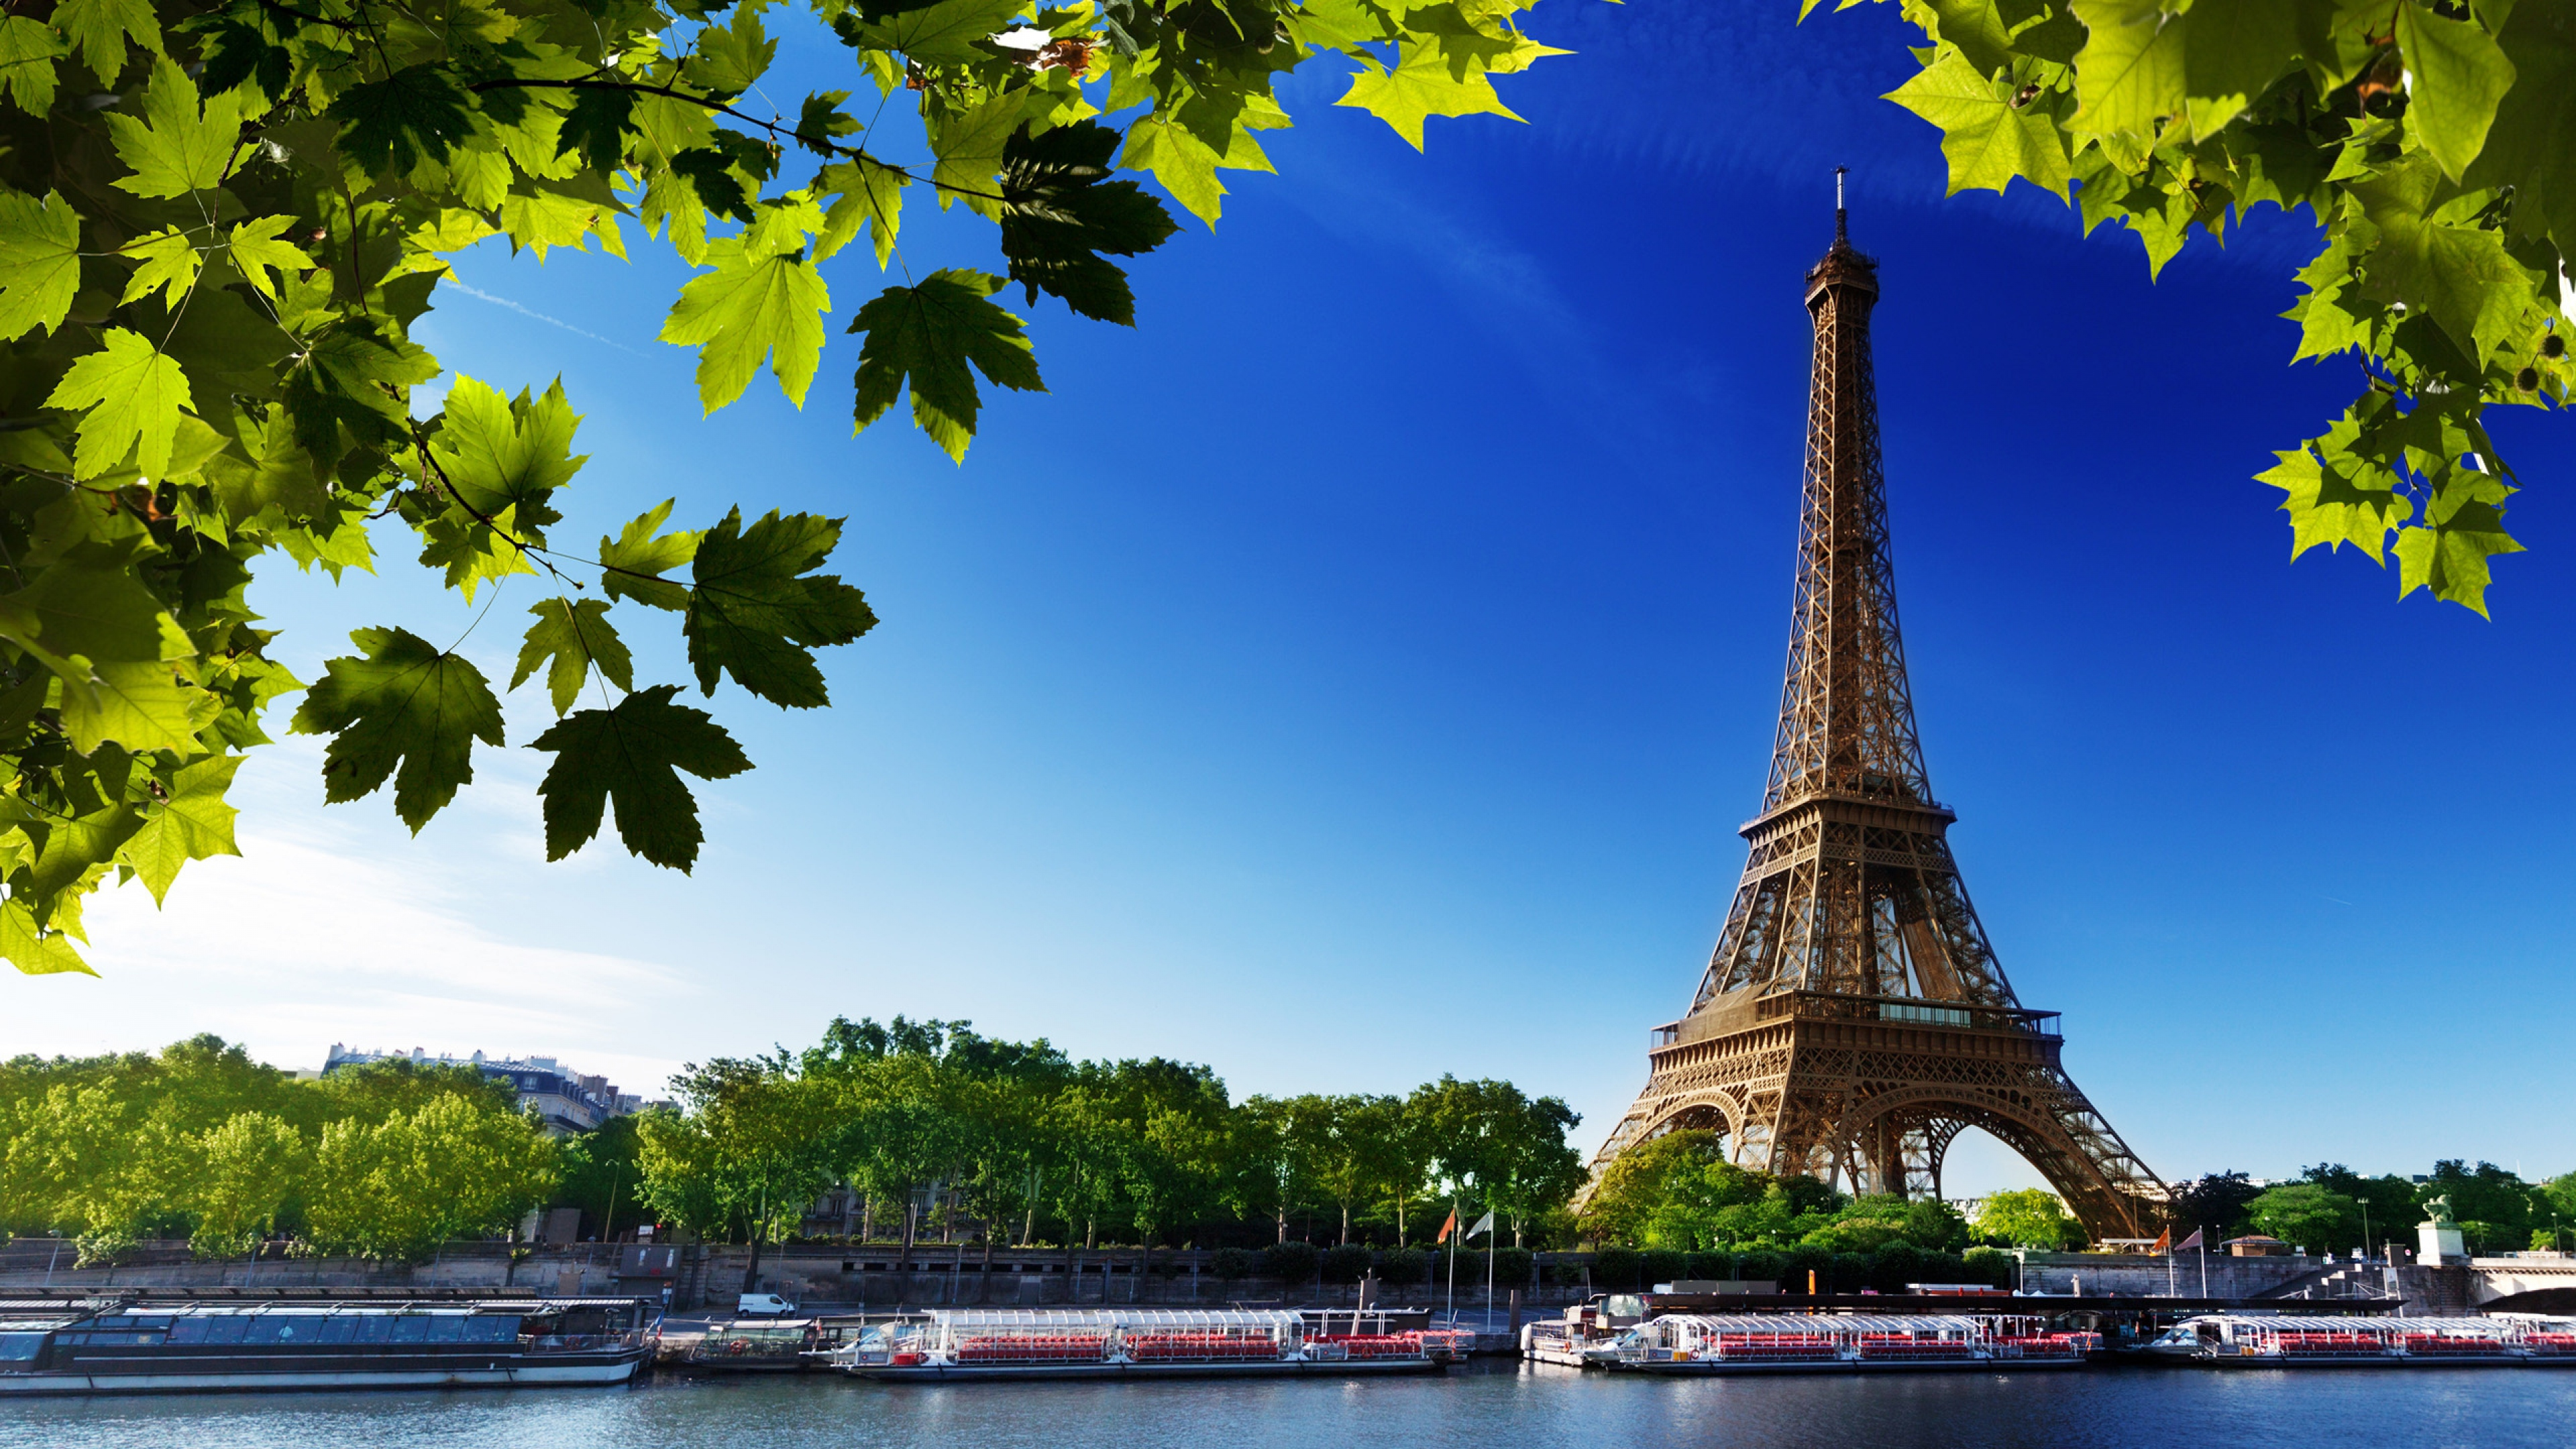 Wallpaper 4k Eiffel Tower Paris 4k 4k Wallpapers Eiffel Tower Wallpapers France Wallpapers Paris Wallpapers World Wallpapers